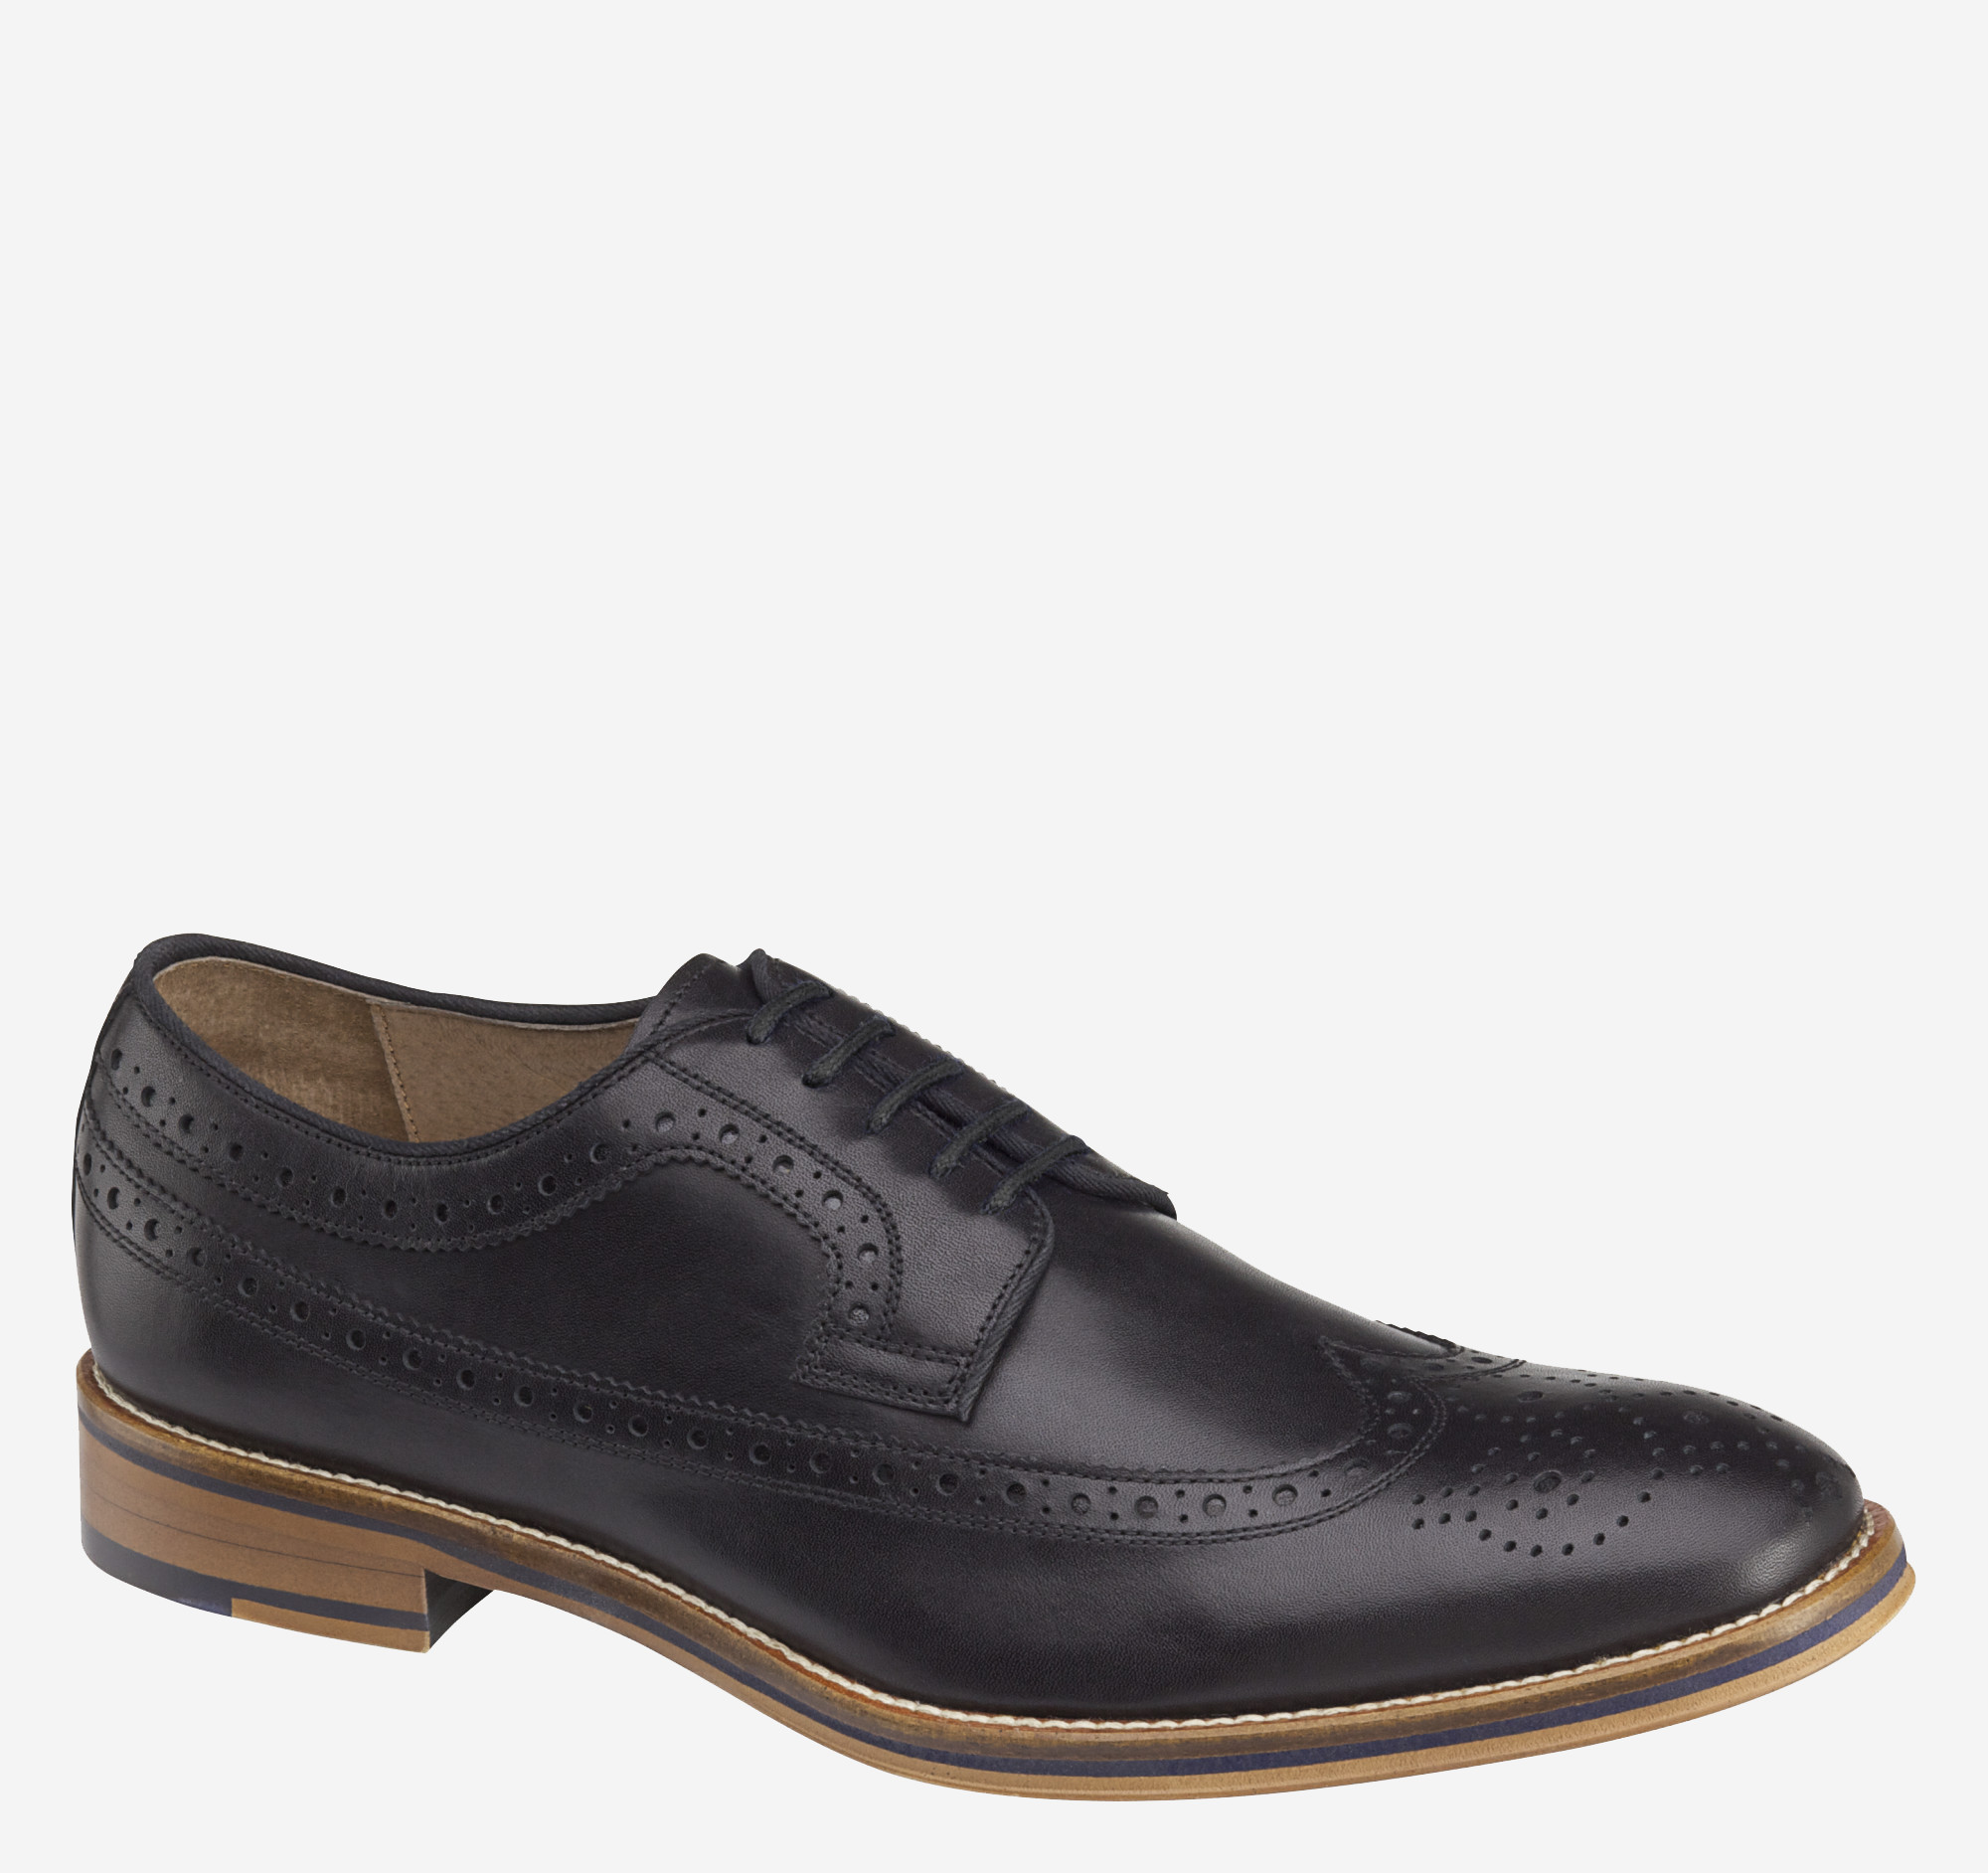 Black And Tan Wingtip Shoes